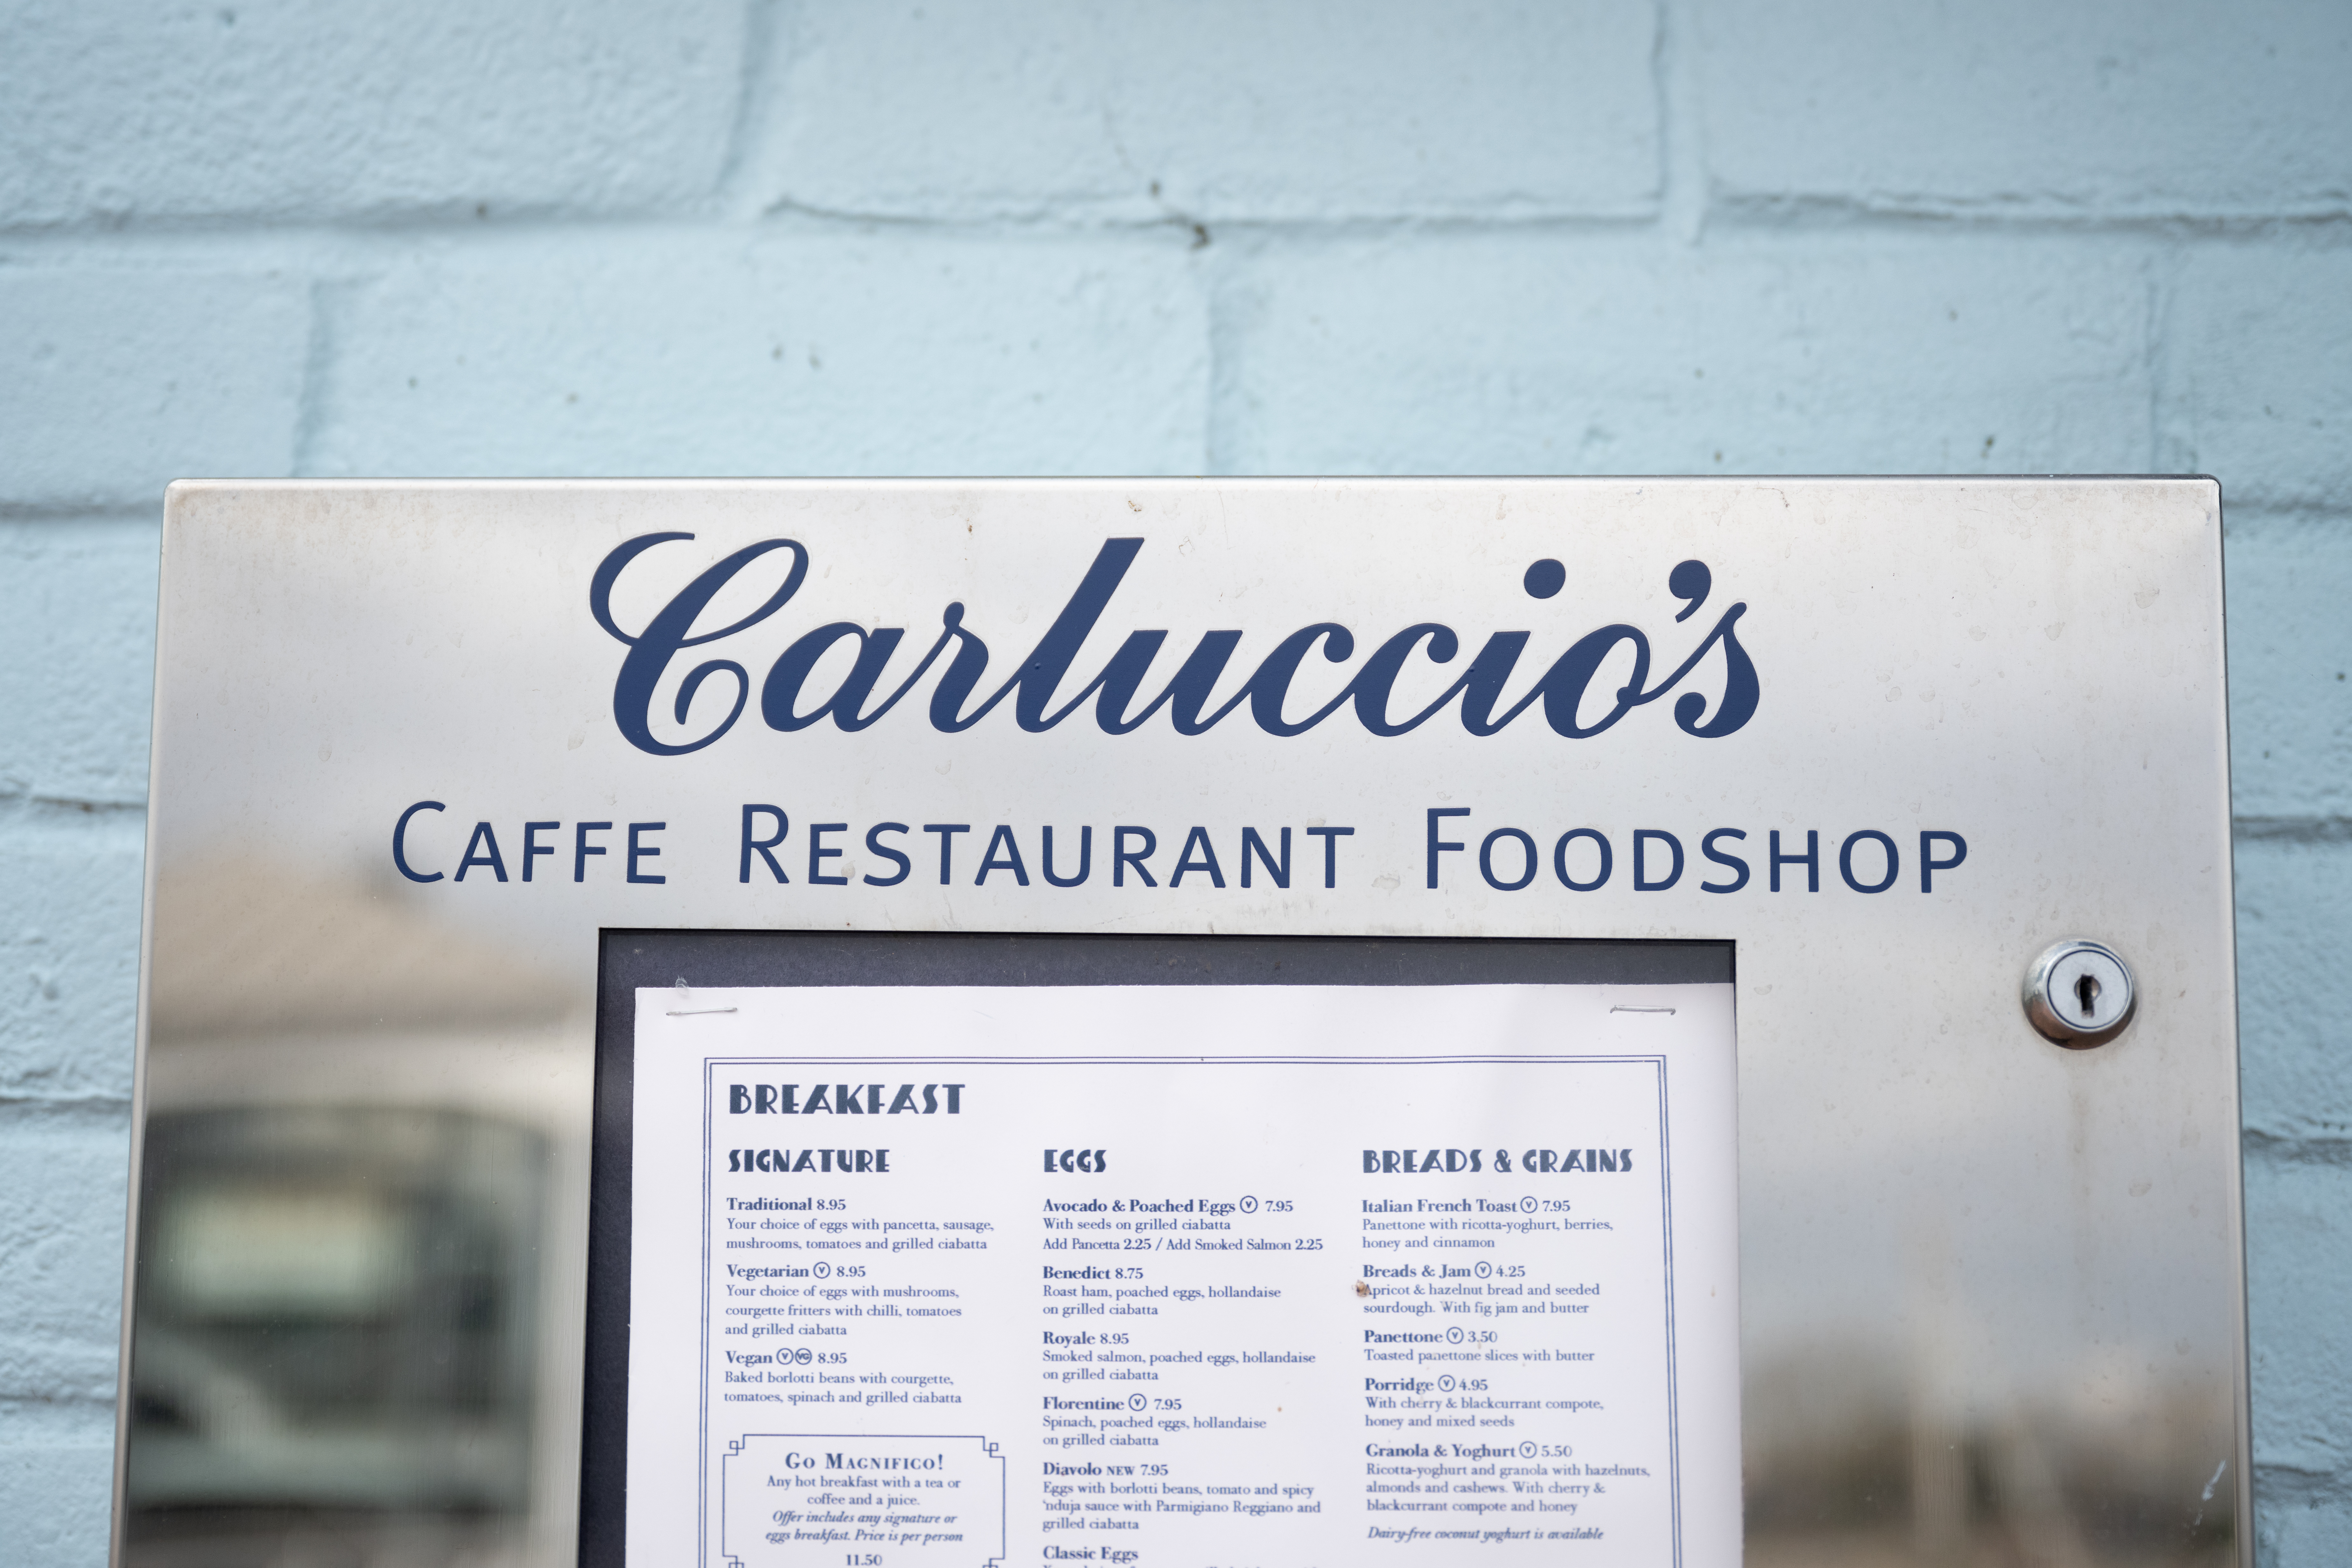 CARDIFF, WALES - MARCH 30: A close-up of a Carluccio's restaurant sign in Cardiff Bay on March 30, 2020, in Cardiff, Wales. Carluccio's has entered into administration due to problems made worse by the Coronavirus. The Italian restaurant chain has 71 restaurants across the UK and employs 2000 staff. The Coronavirus (COVID-19) pandemic has spread to many countries across the world, claiming over 35,000 lives and infecting hundreds of thousands more. (Photo by Matthew Horwood/Getty Images)